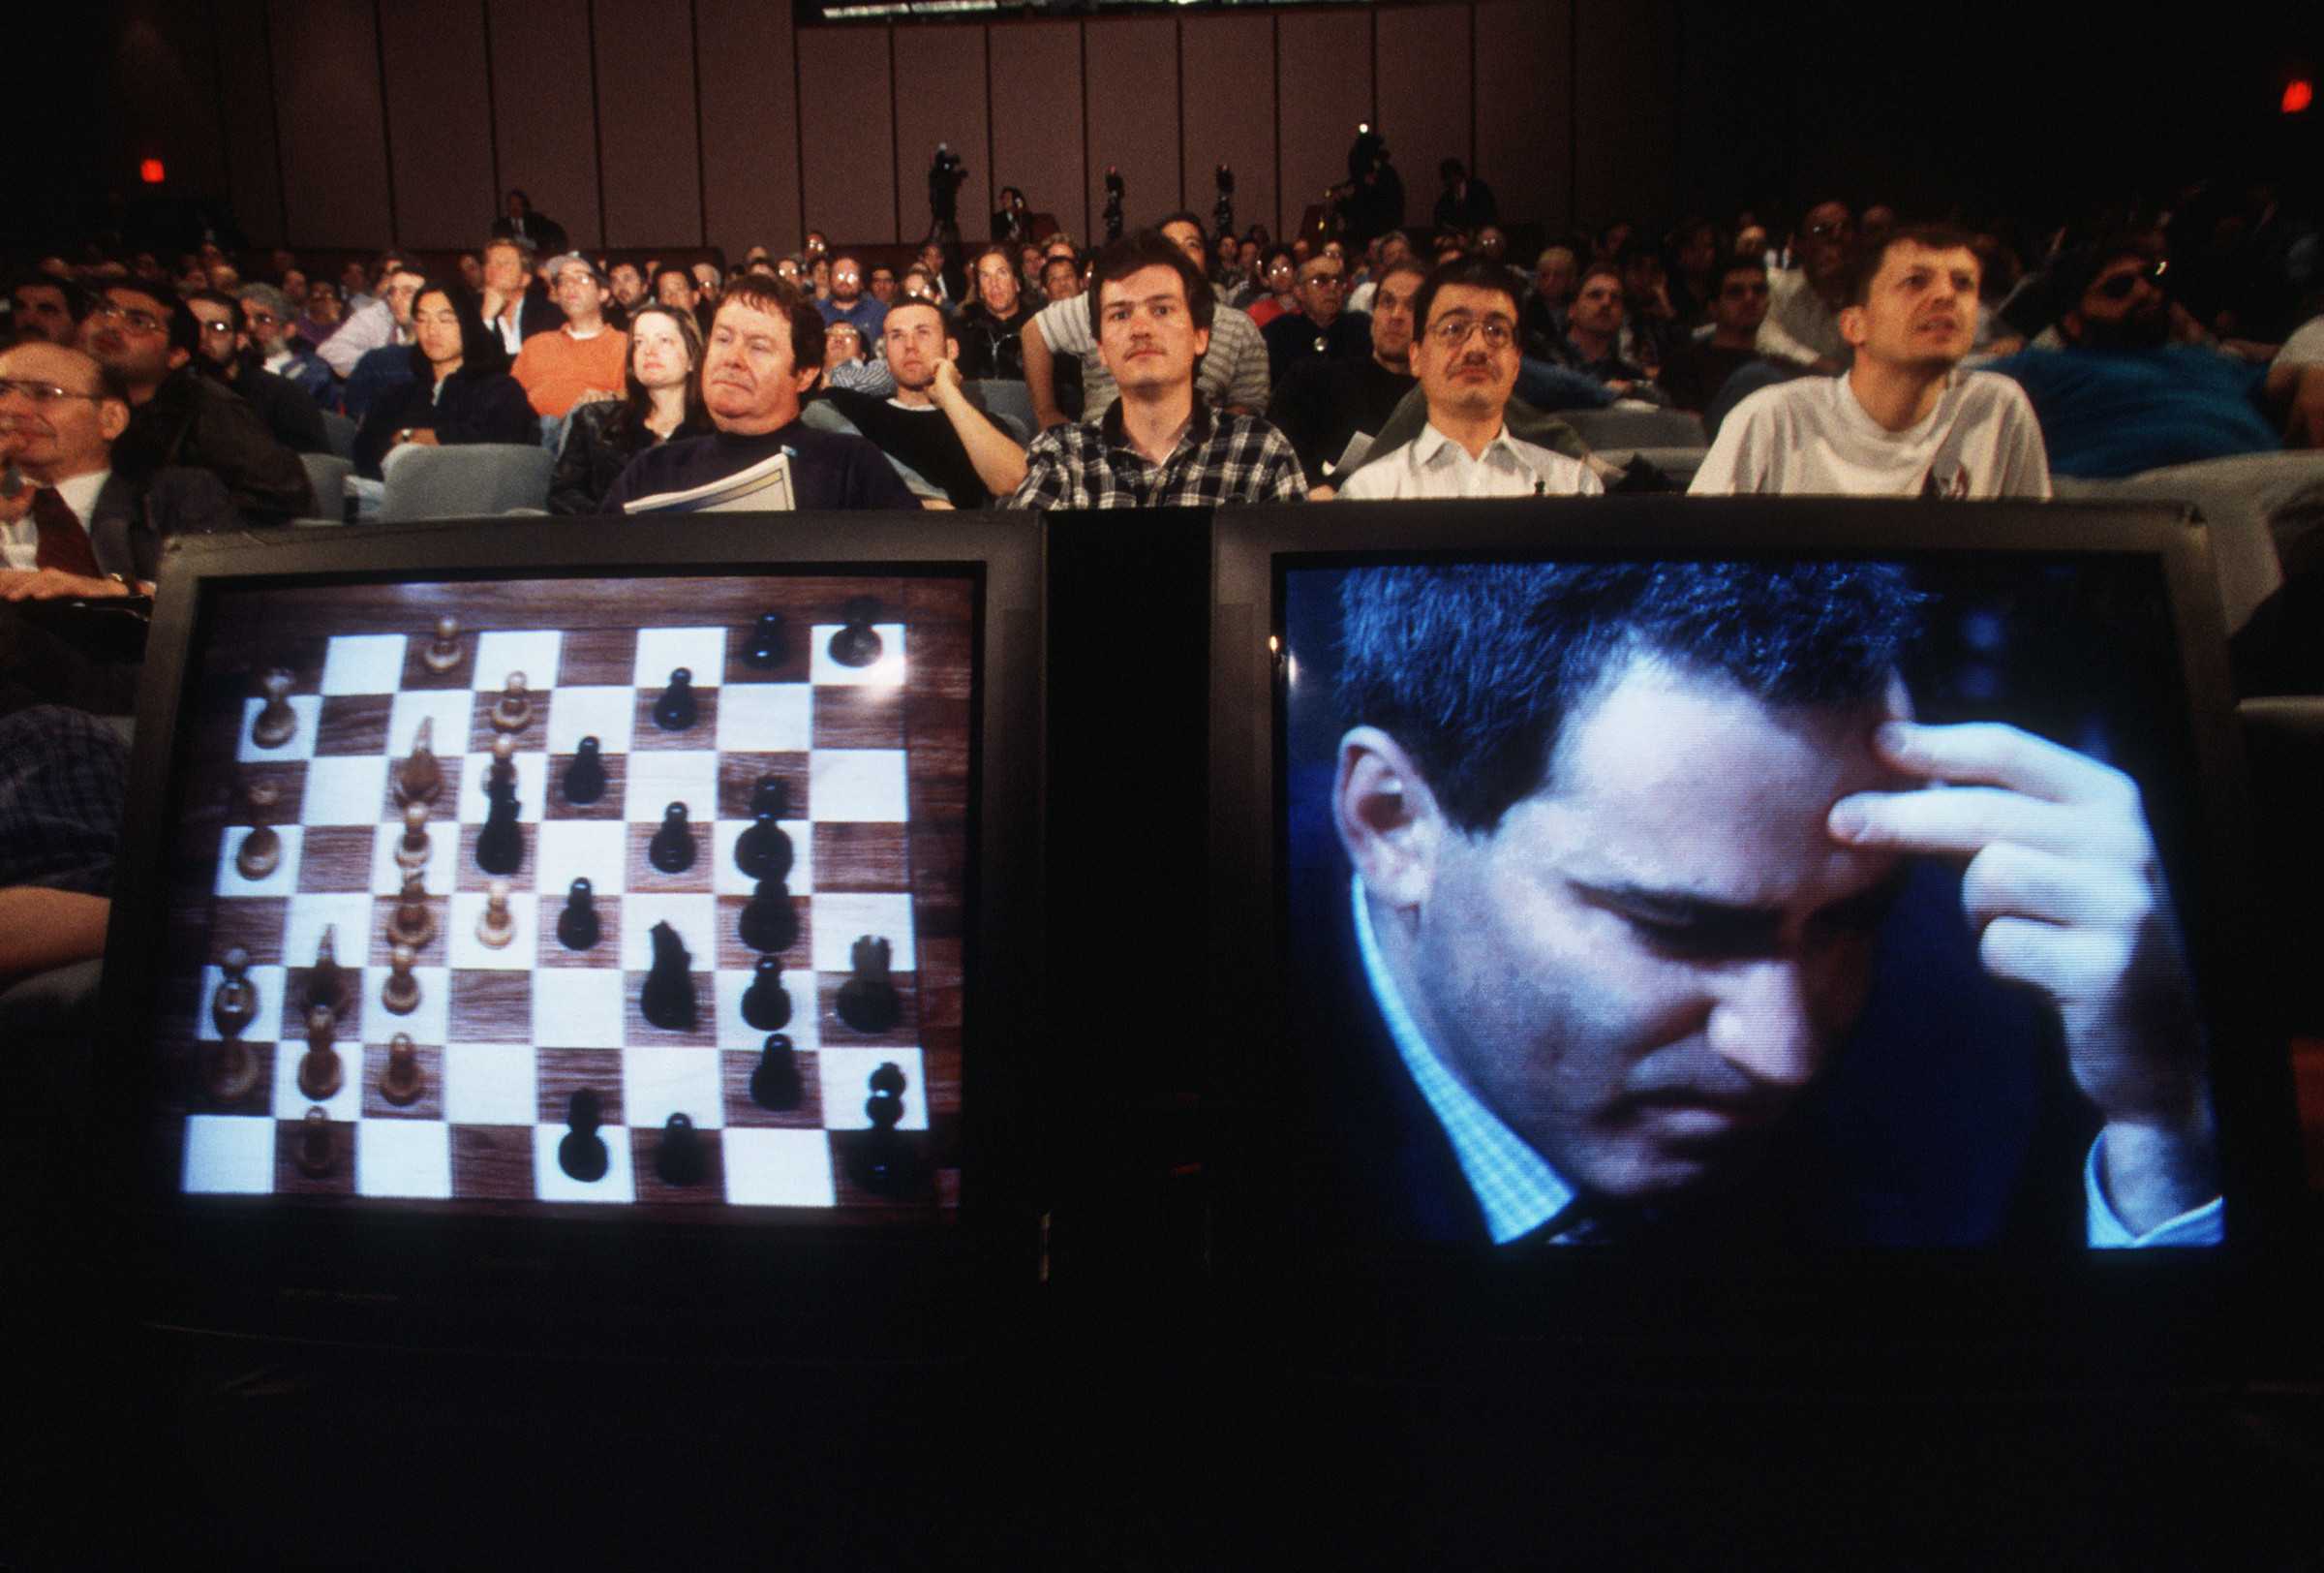 05 May 1997 --- Champion chess player Garry Kasparov plays against IBM's chess-playing supercomputer. Here, the match is watched in an auditorium via television. --- Image by © Najlah Feanny/CORBIS SABA